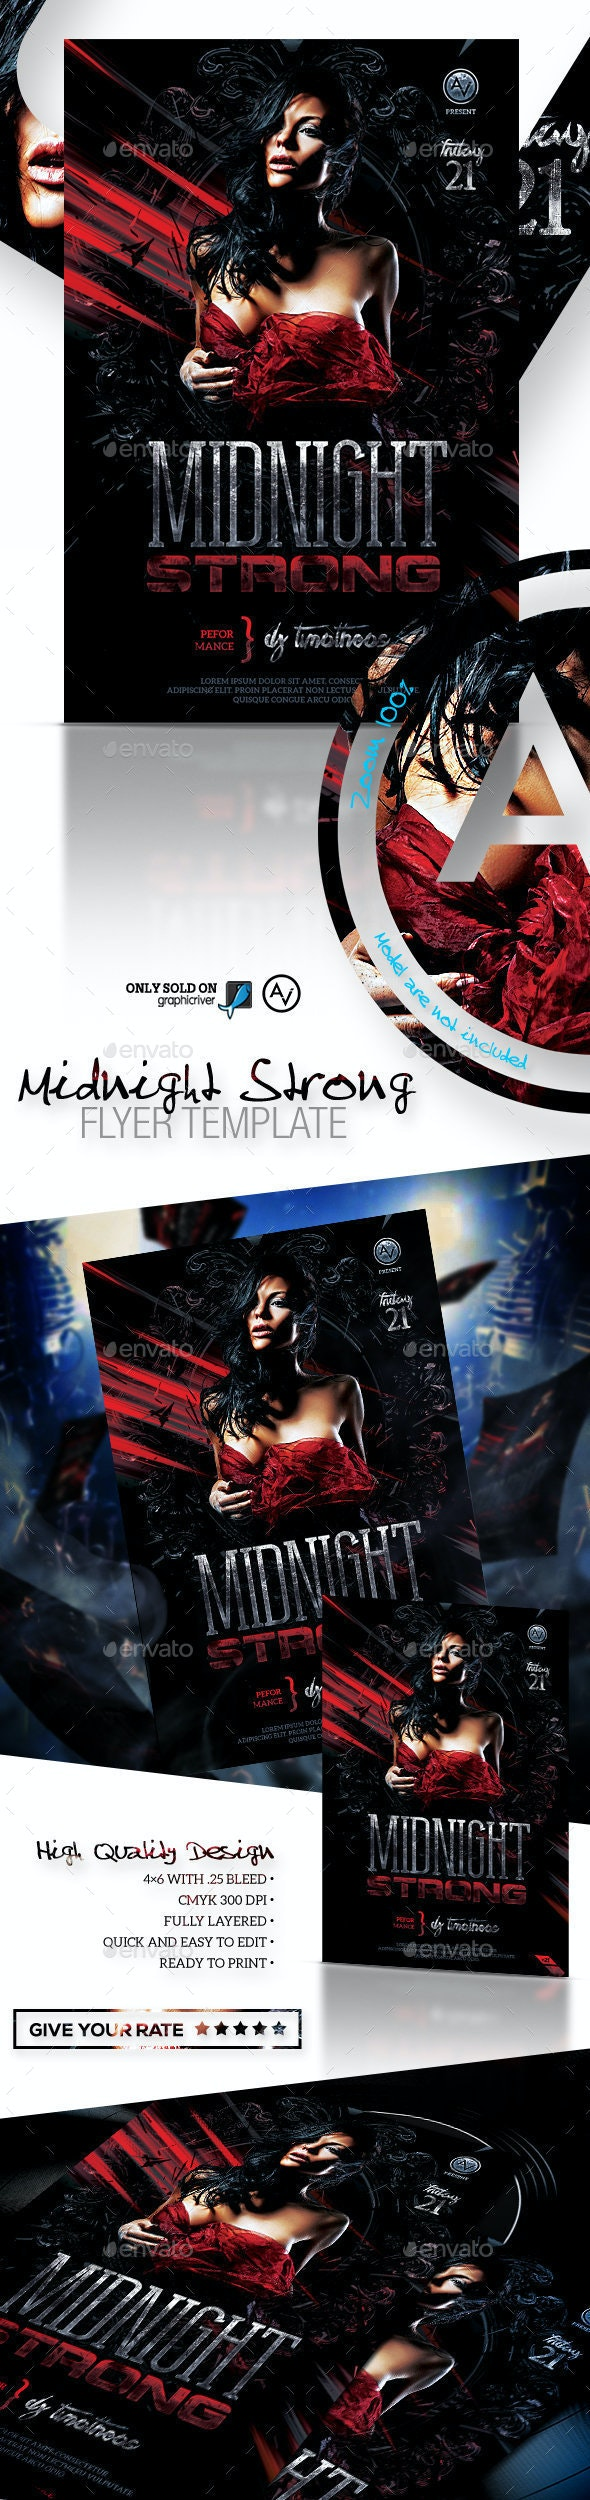 Midnight Strong Flyer Template - Clubs & Parties Events